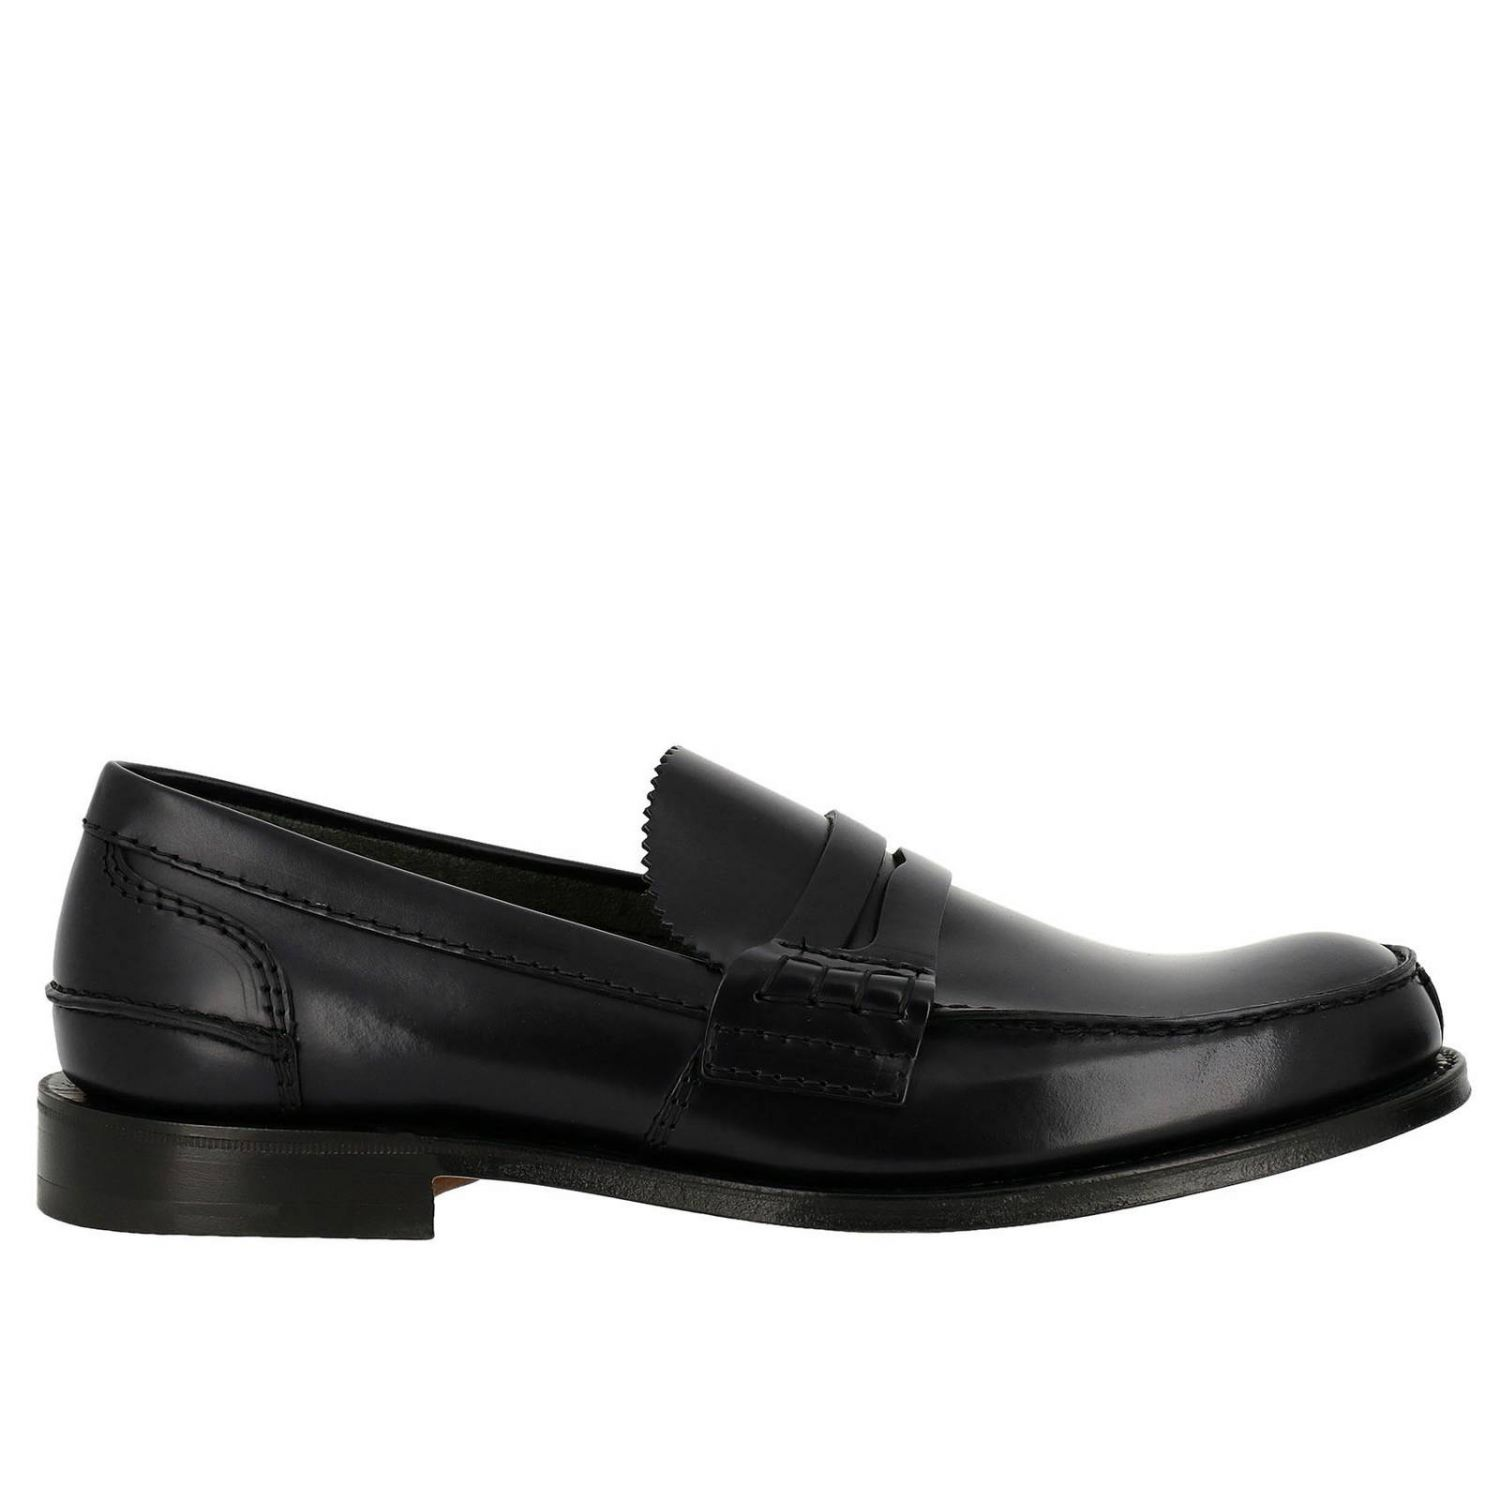 Loafers Church's: Shoes men Church's blue 1